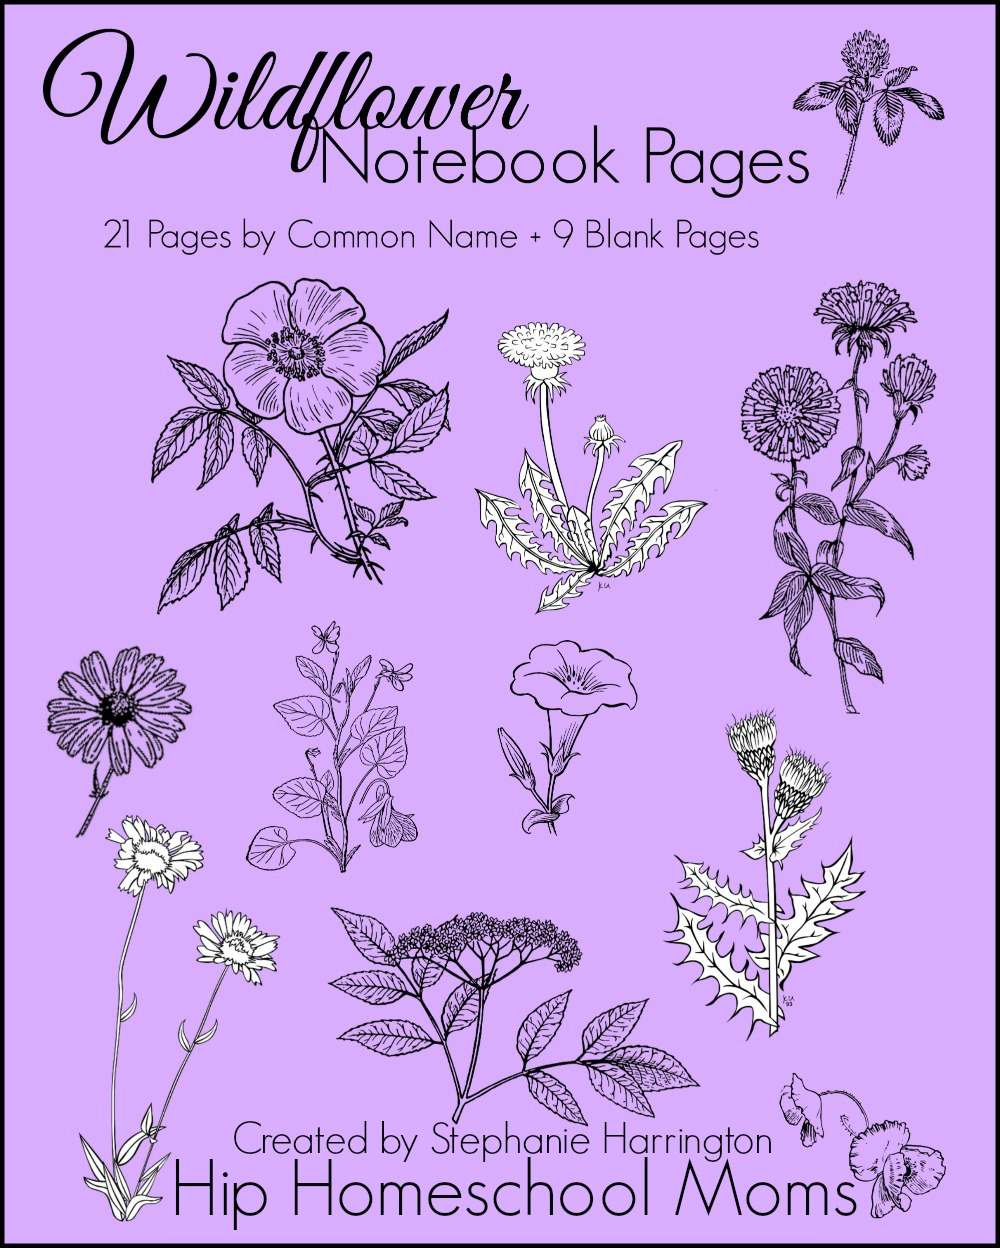 Wildflower Notebook Pages Cover